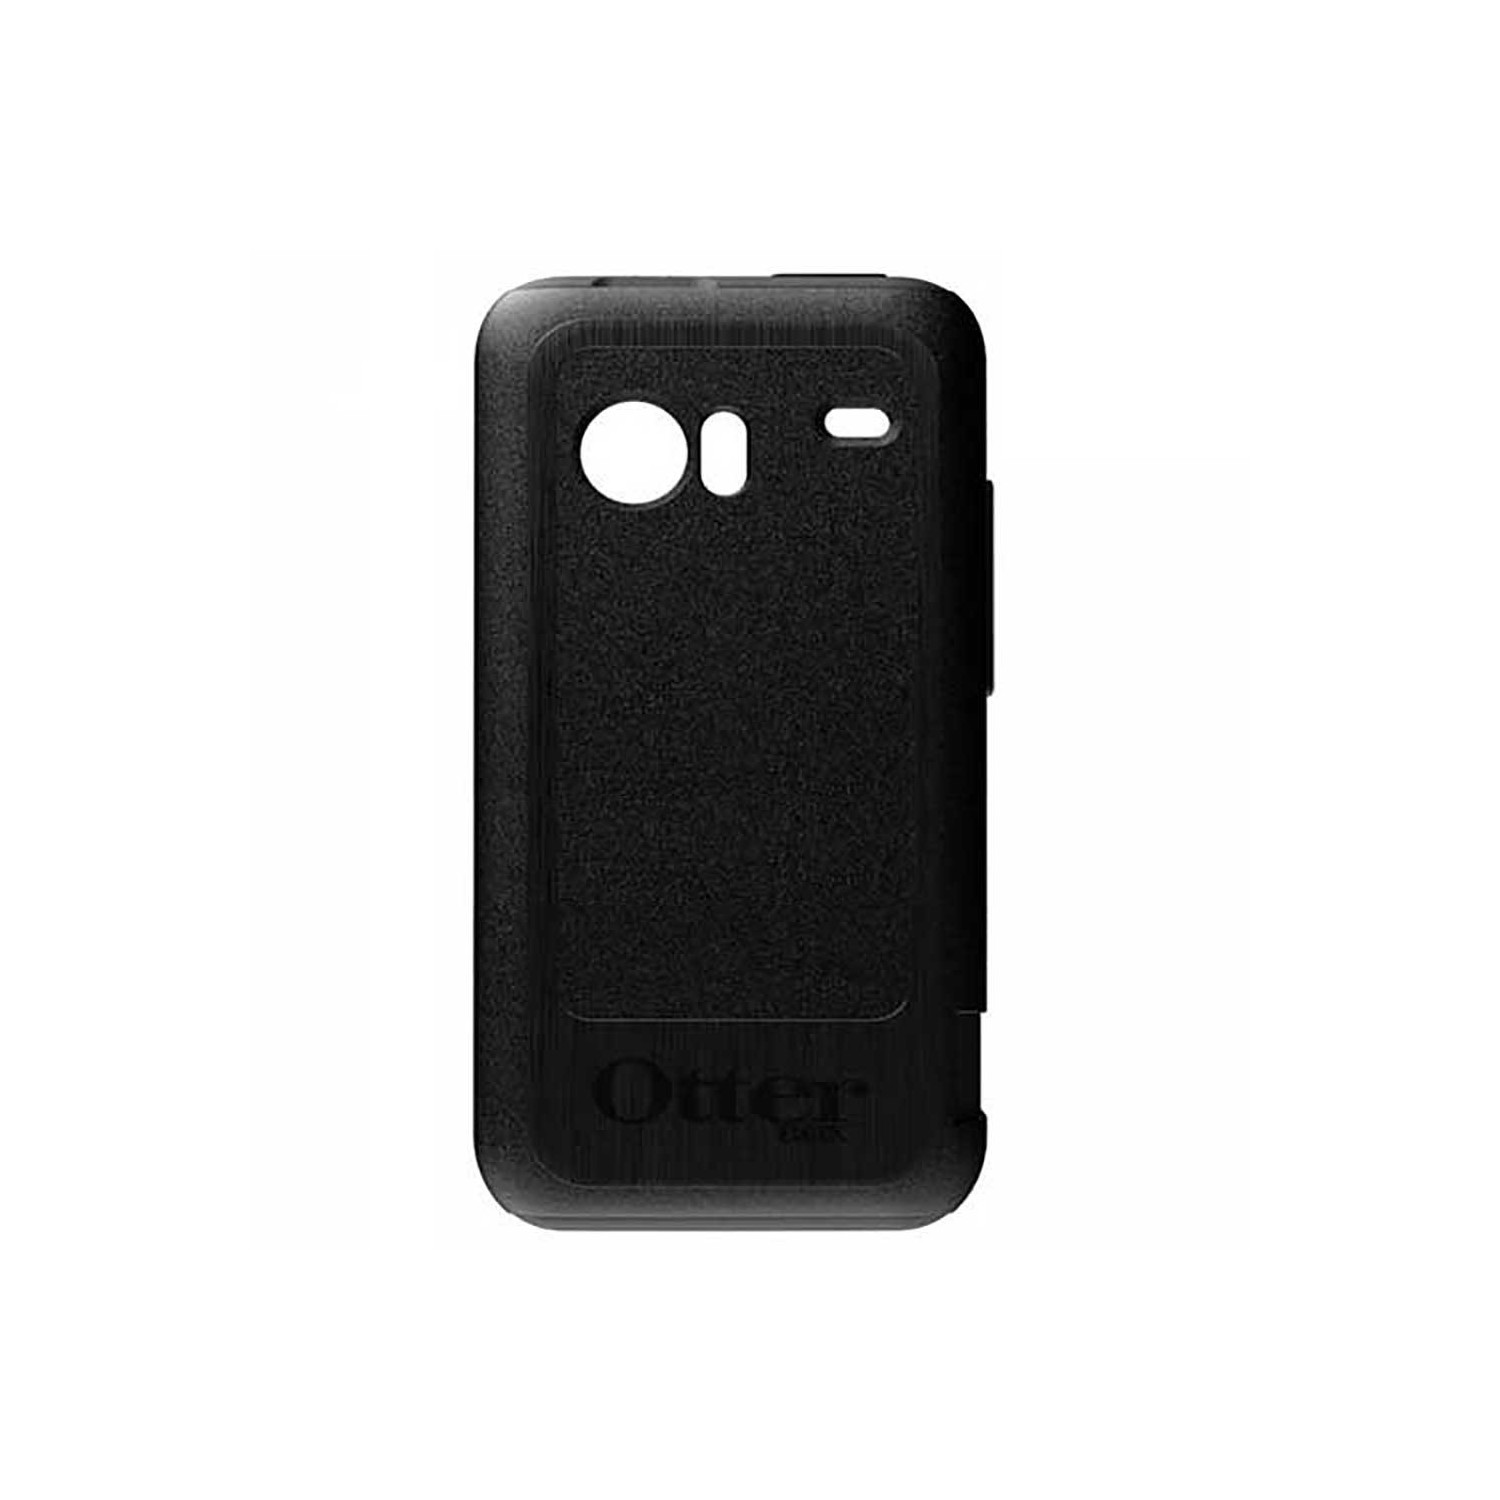 Case - Otterbox Commuter for HTD Droid Incredible